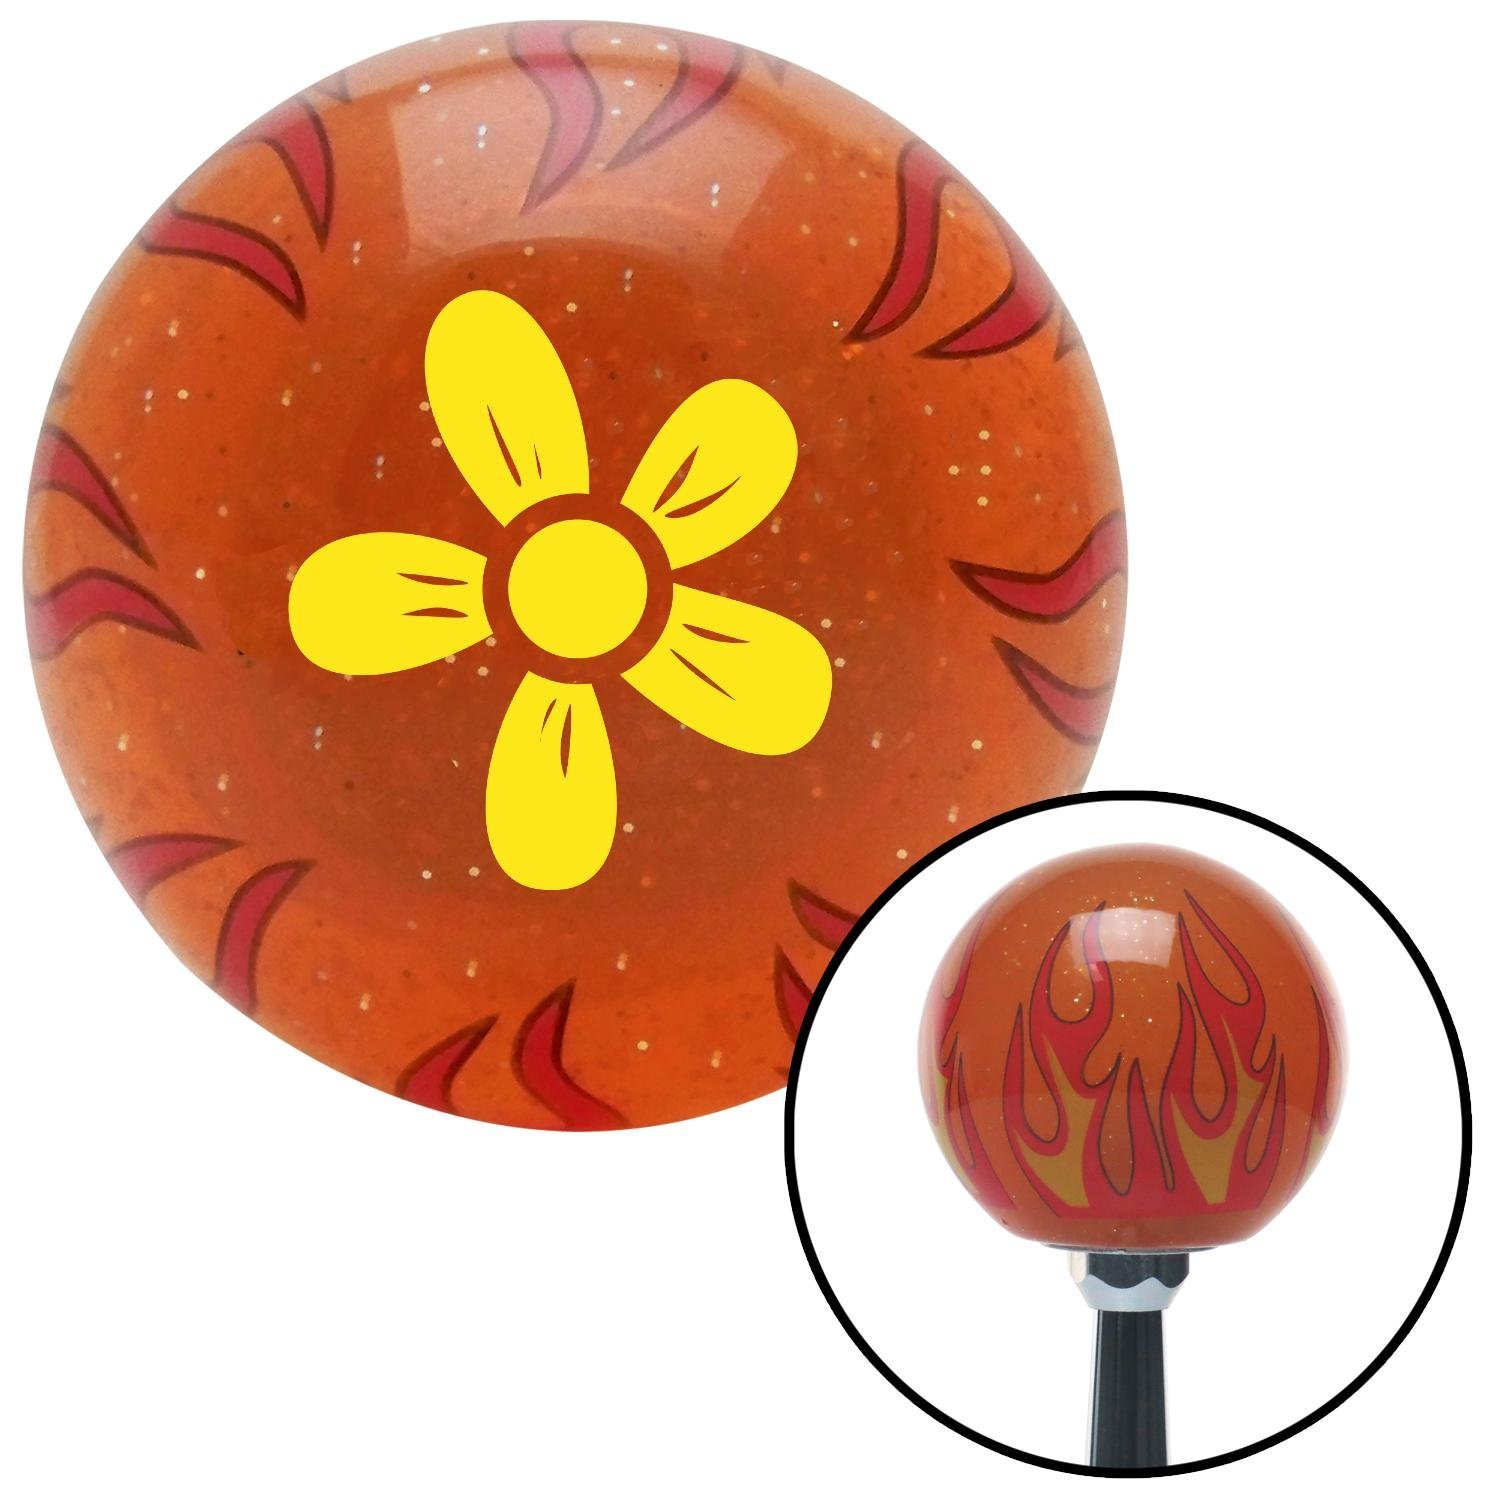 Yellow Hawaiian Flower #2 American Shifter 257124 Orange Flame Metal Flake Shift Knob with M16 x 1.5 Insert